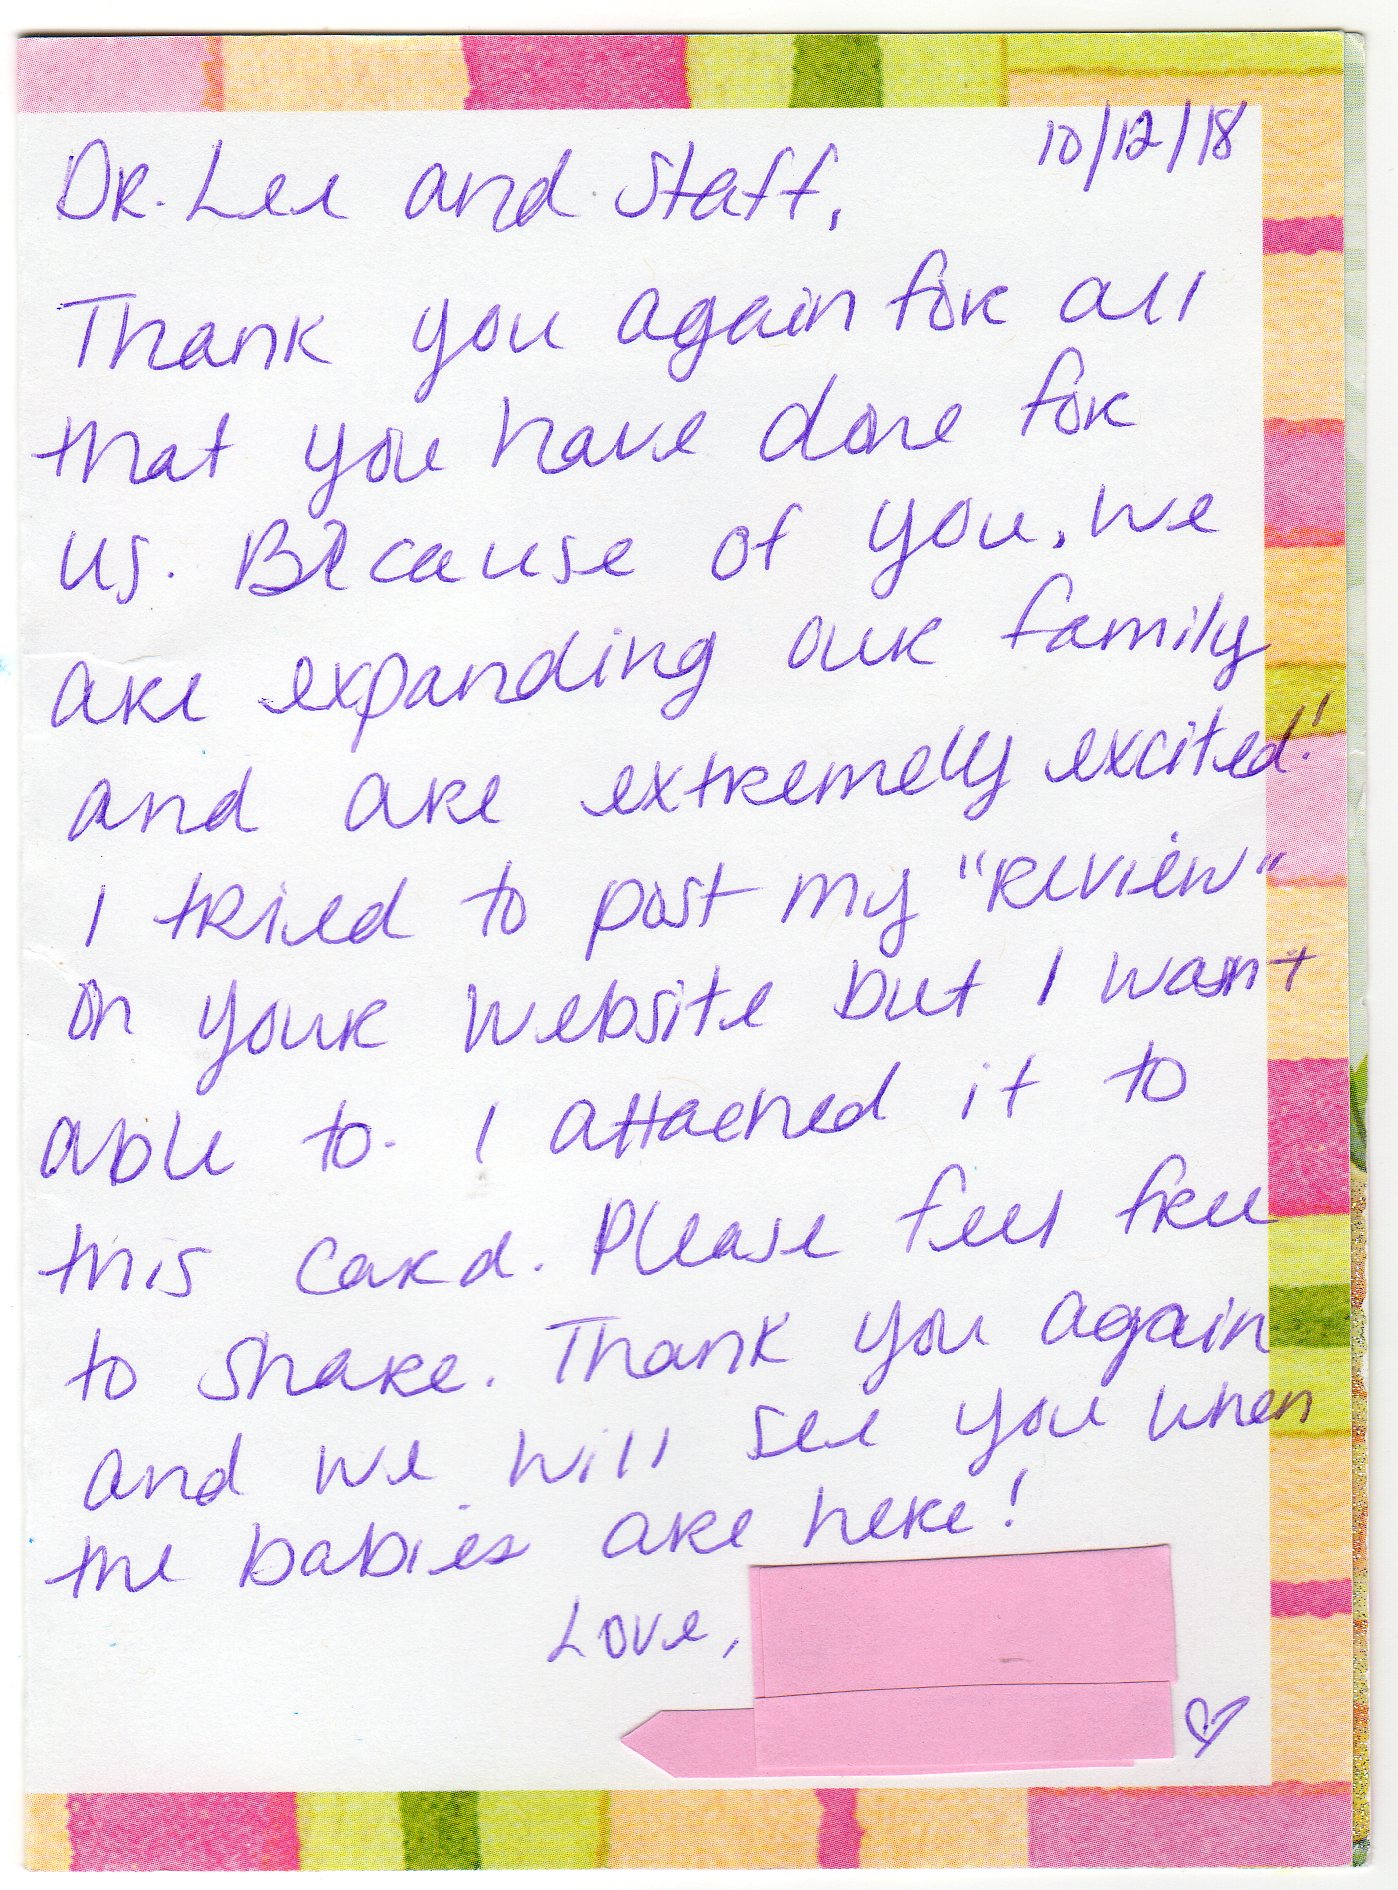 Thank You Note To Doctor : thank, doctor, Fertility, Doctors, Family, Lyons